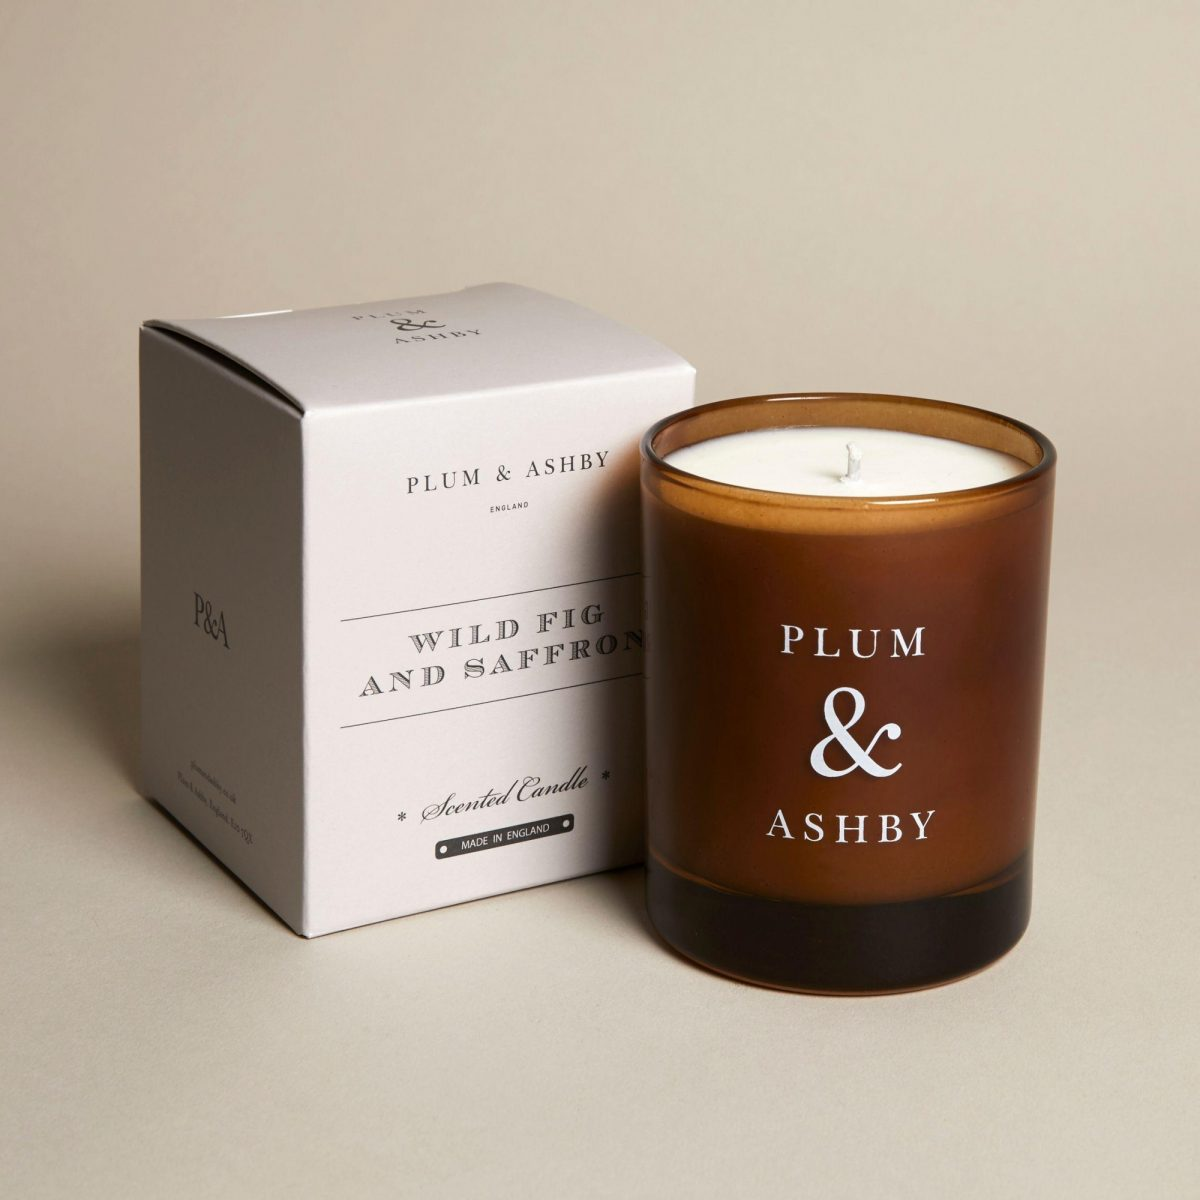 Plum & Ashby Wild Fig and Saffron Candle